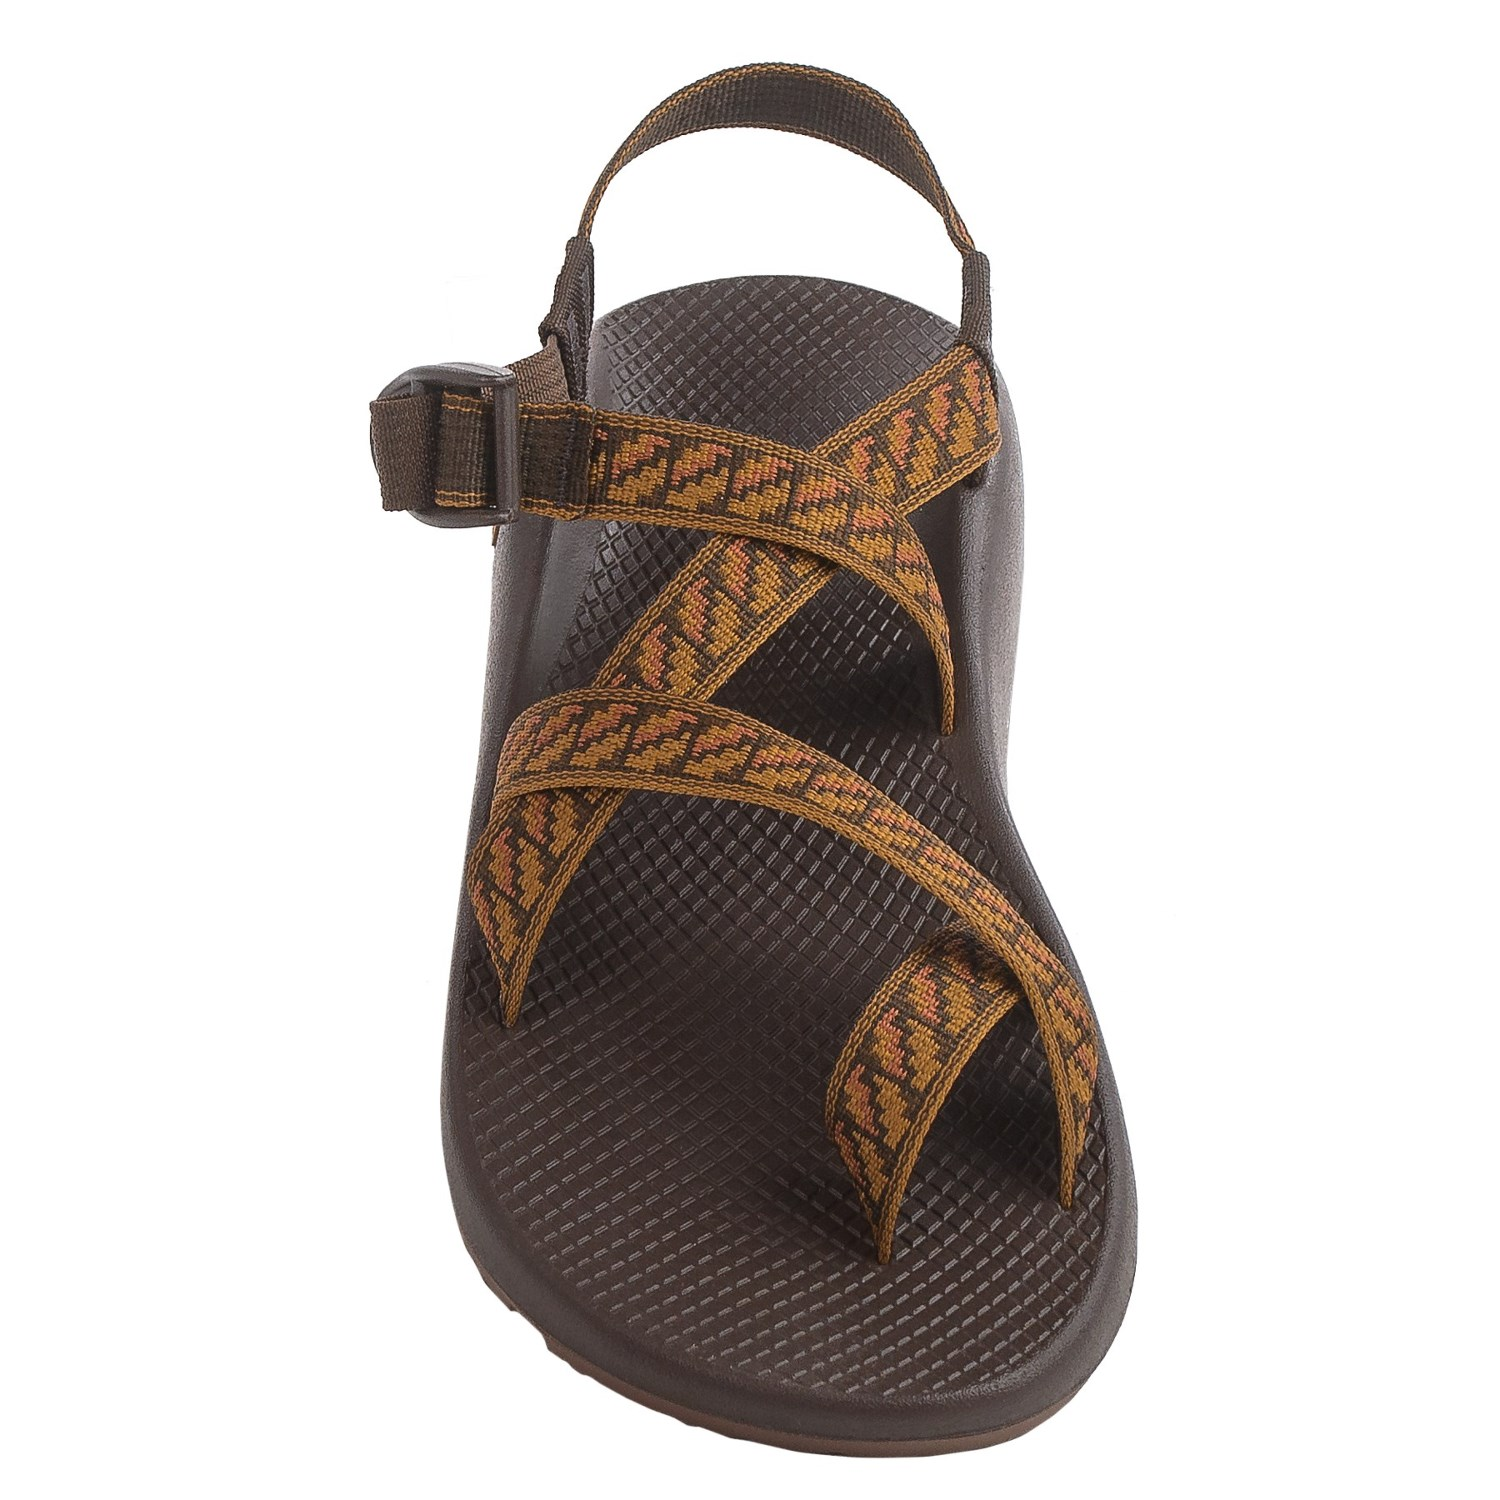 fcb913b6db6 Chaco Z 2® Classic Sport Sandals (For Men) - Save 42%